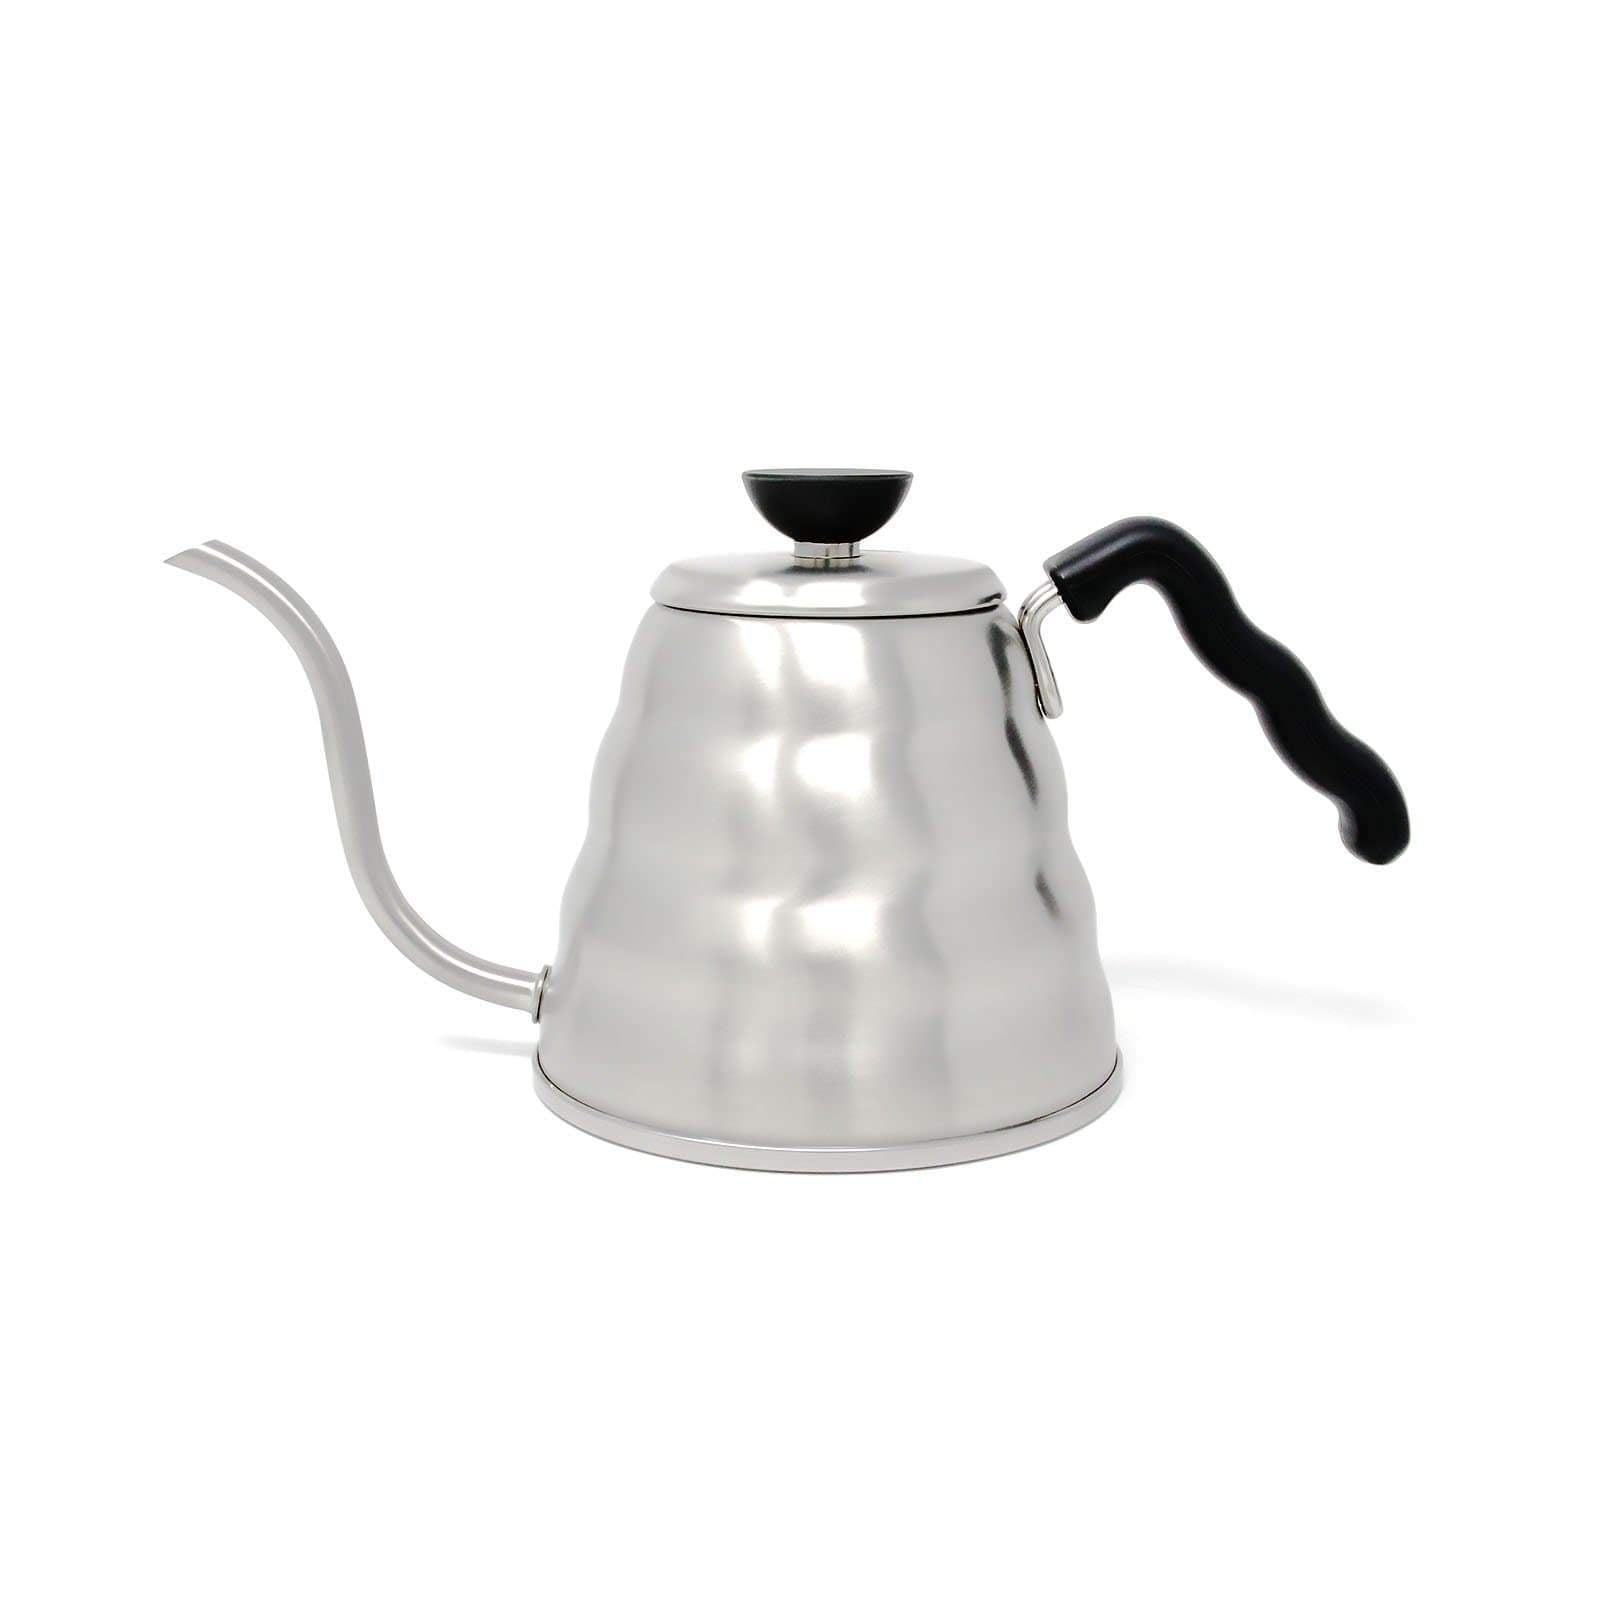 Hario V60 Buono Induction Pour Over Brewing Kettle 1.2L Pour-Over Kettles